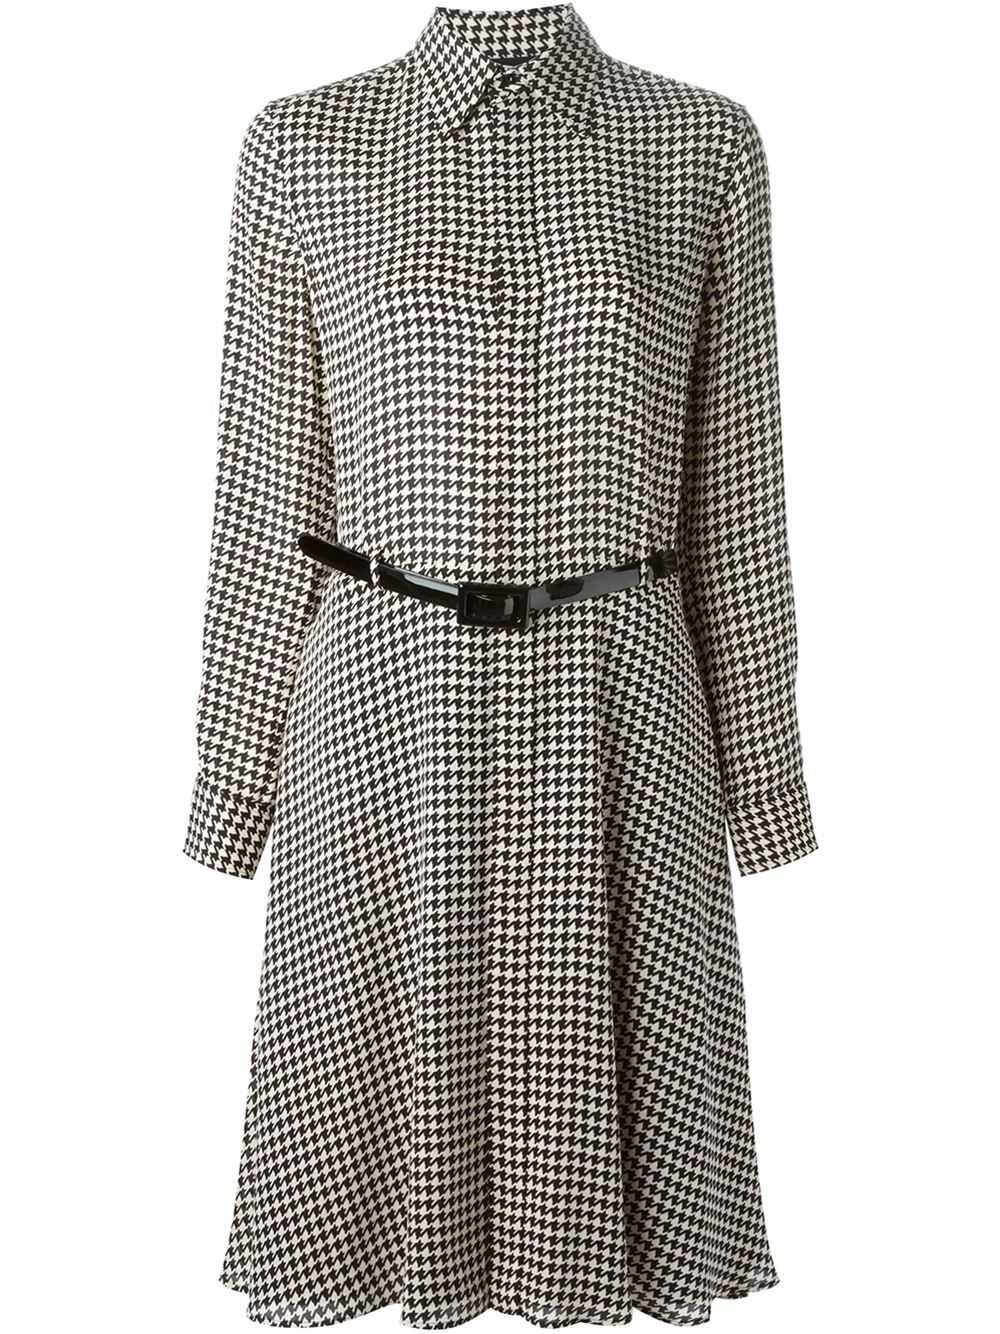 db6ab61907a Ralph Lauren Black Houndstooth Print Shirt Dress - Banner - Farfetch.com